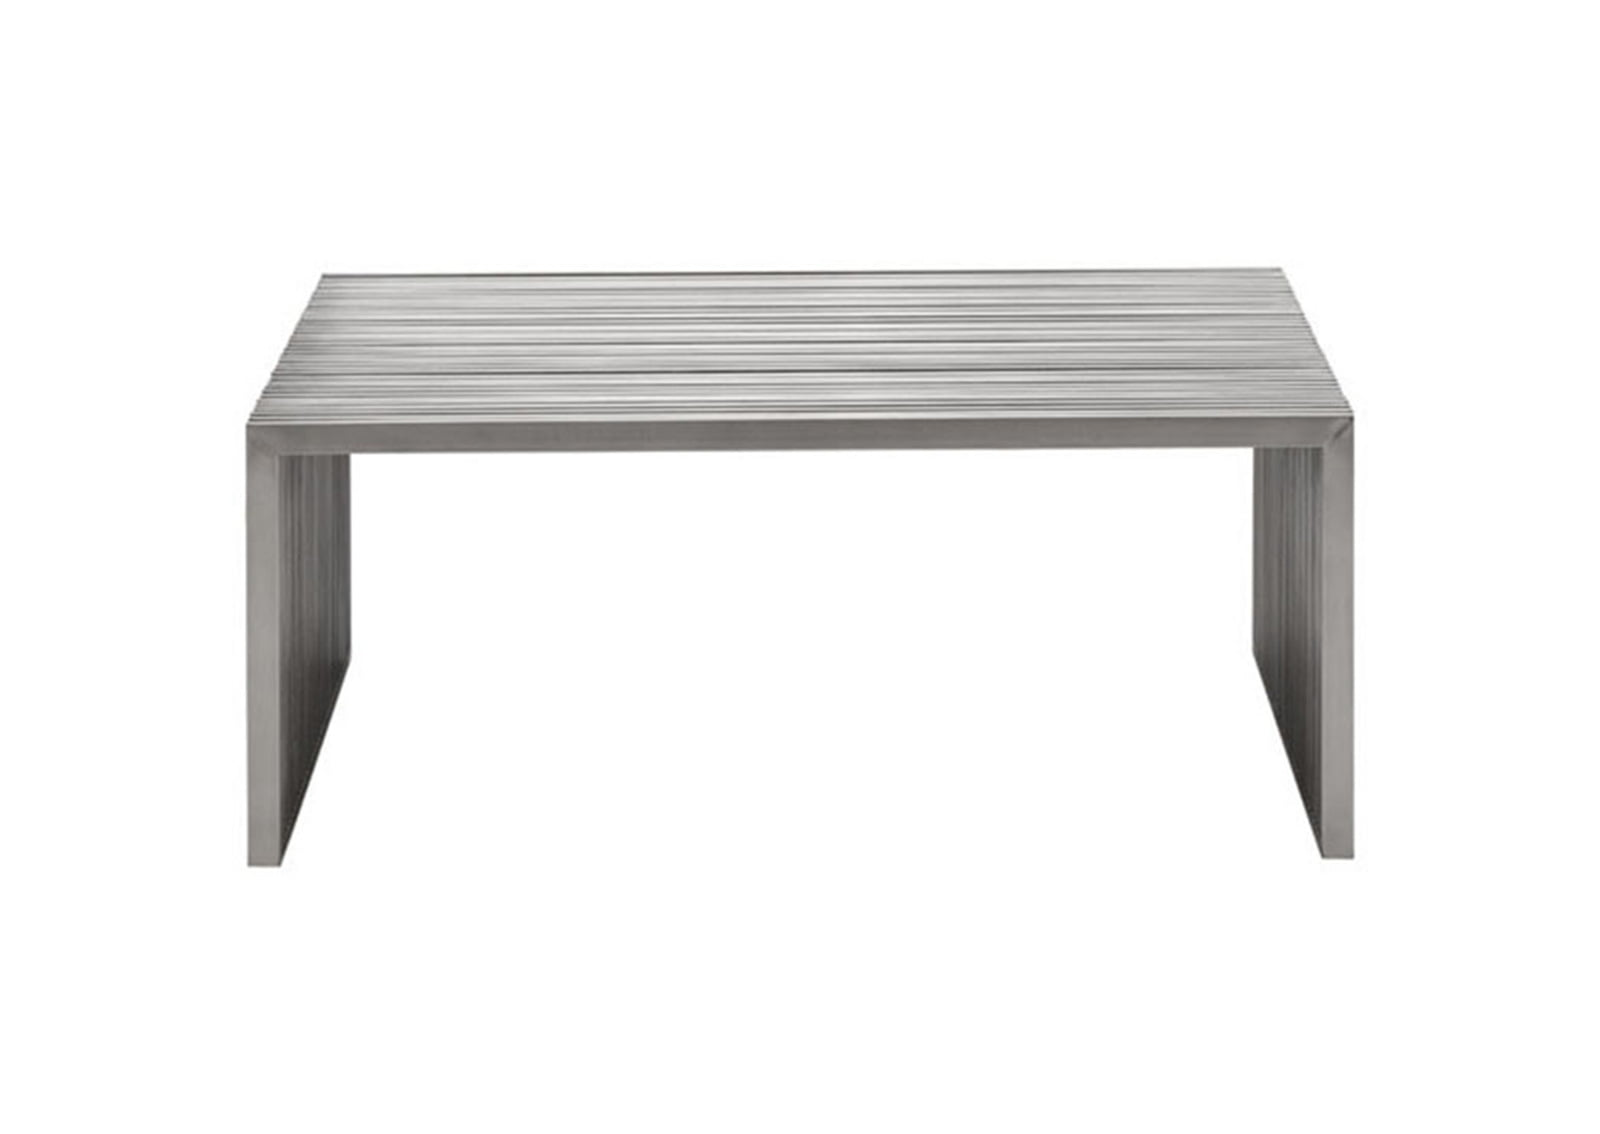 Novel Square Coffee Table Brushed Stainless Steel Furnishplus